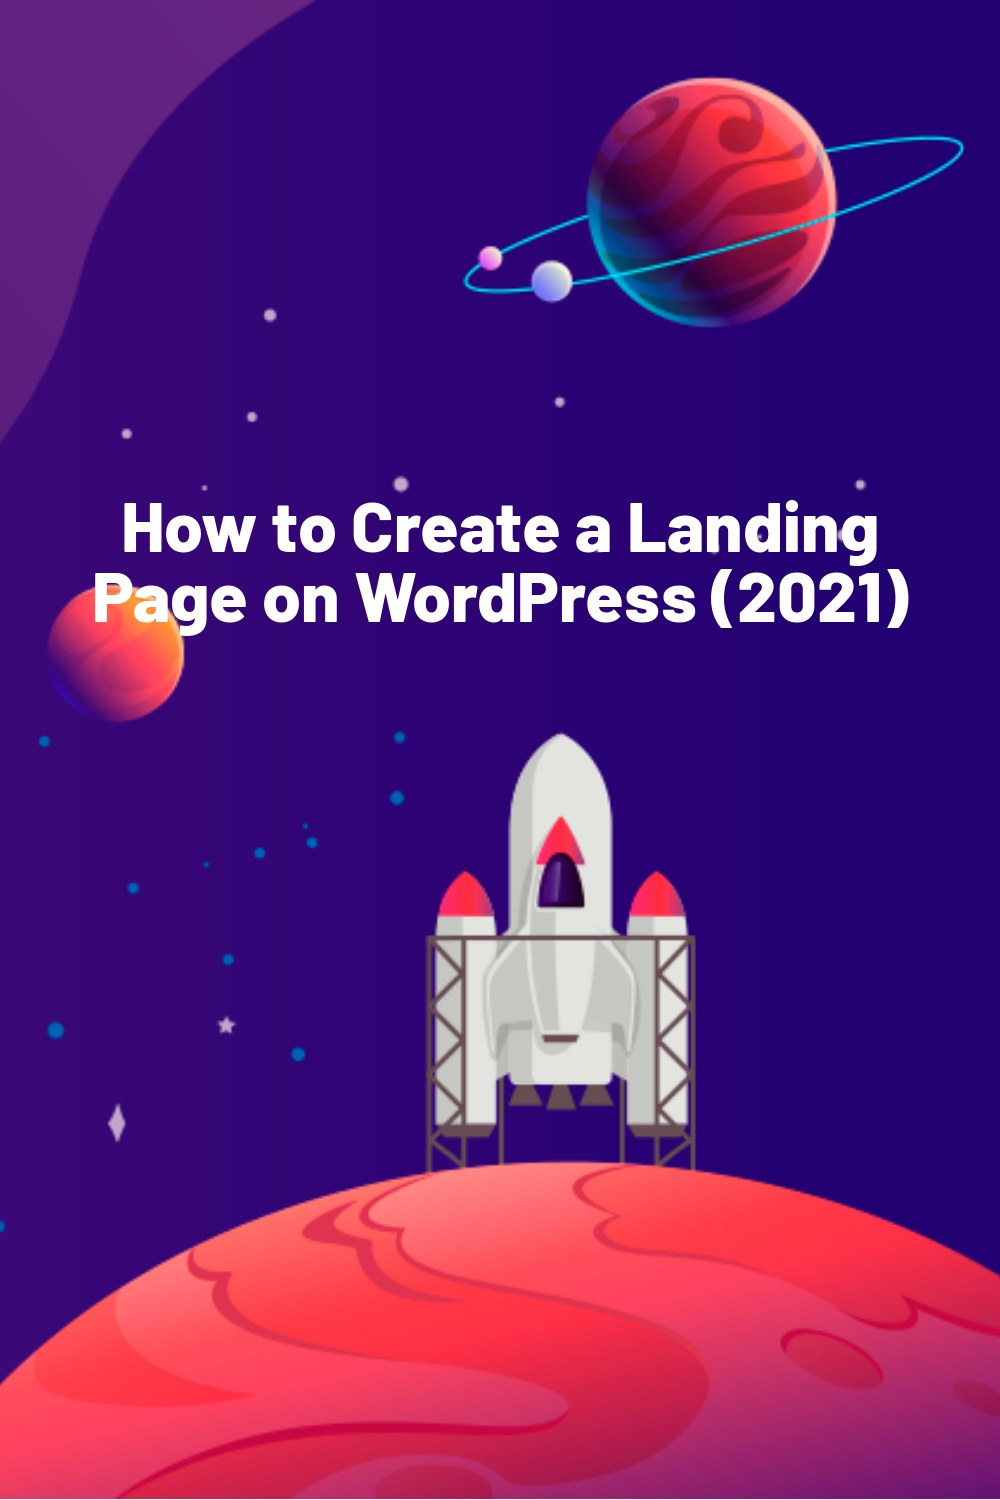 How to Create a Landing Page on WordPress (2021)